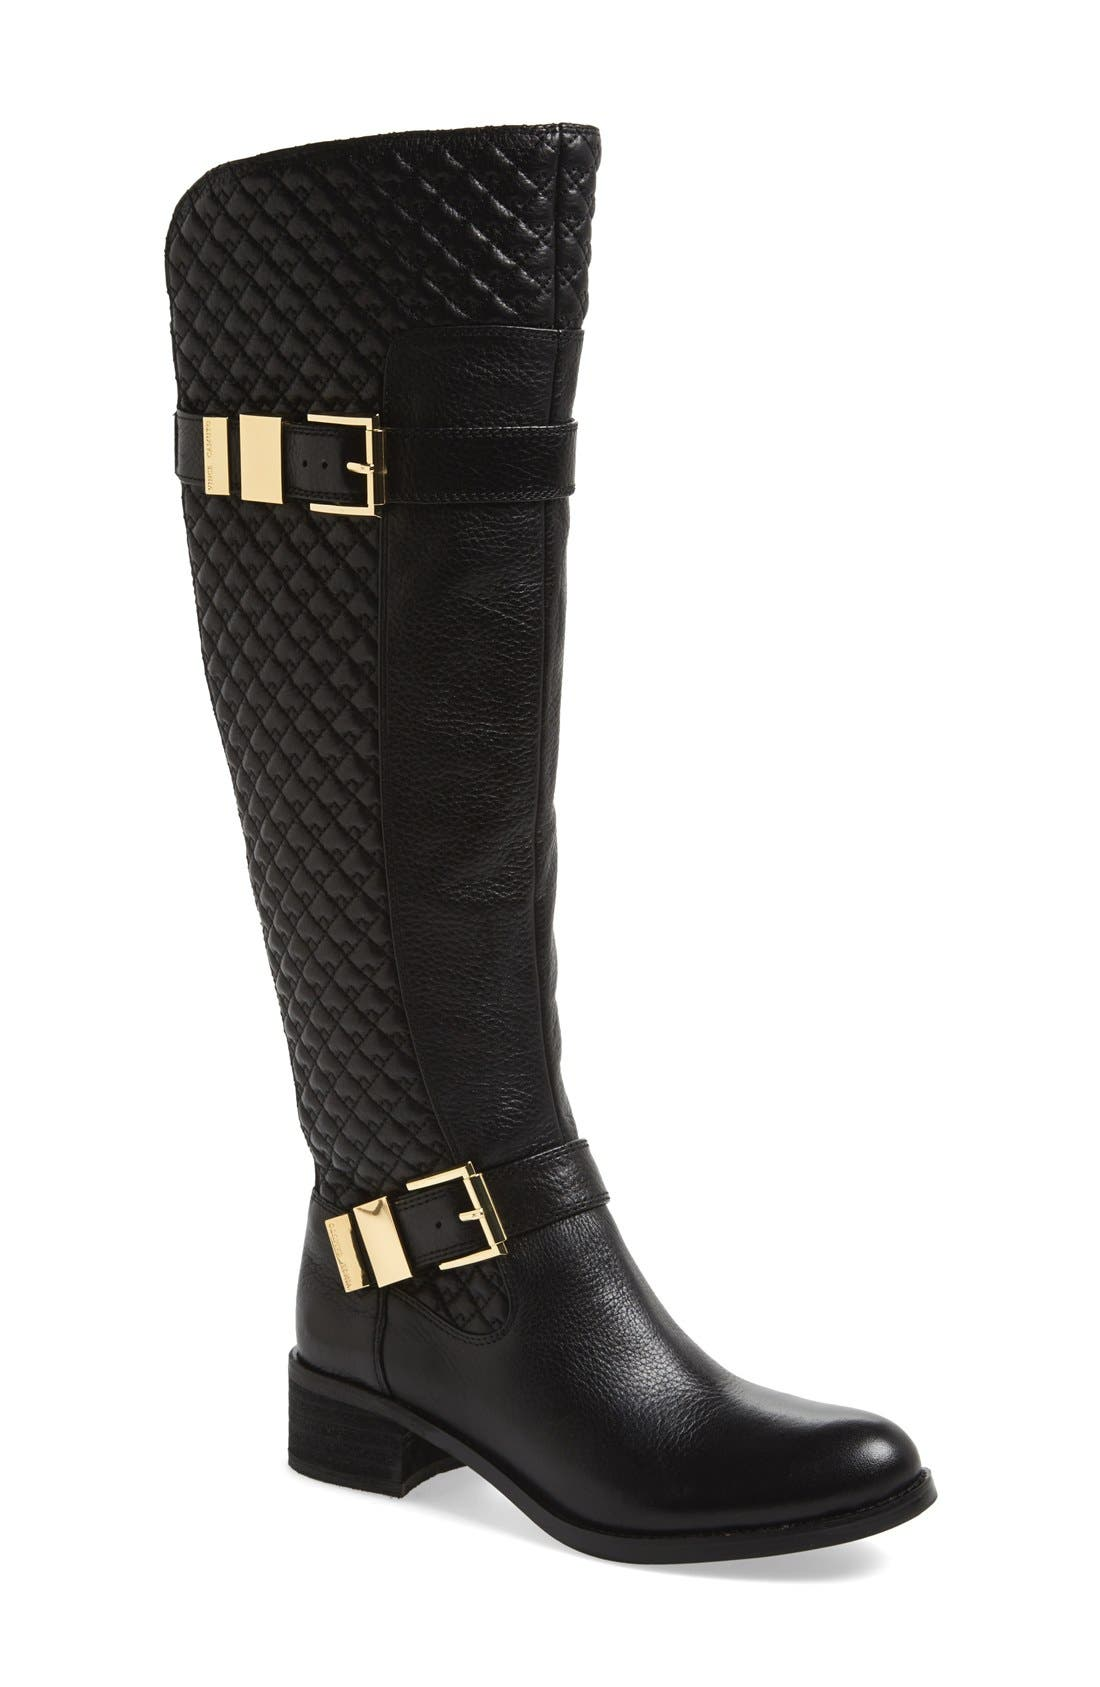 Alternate Image 1 Selected - Vince Camuto 'Faris' Tall Boot (Women)